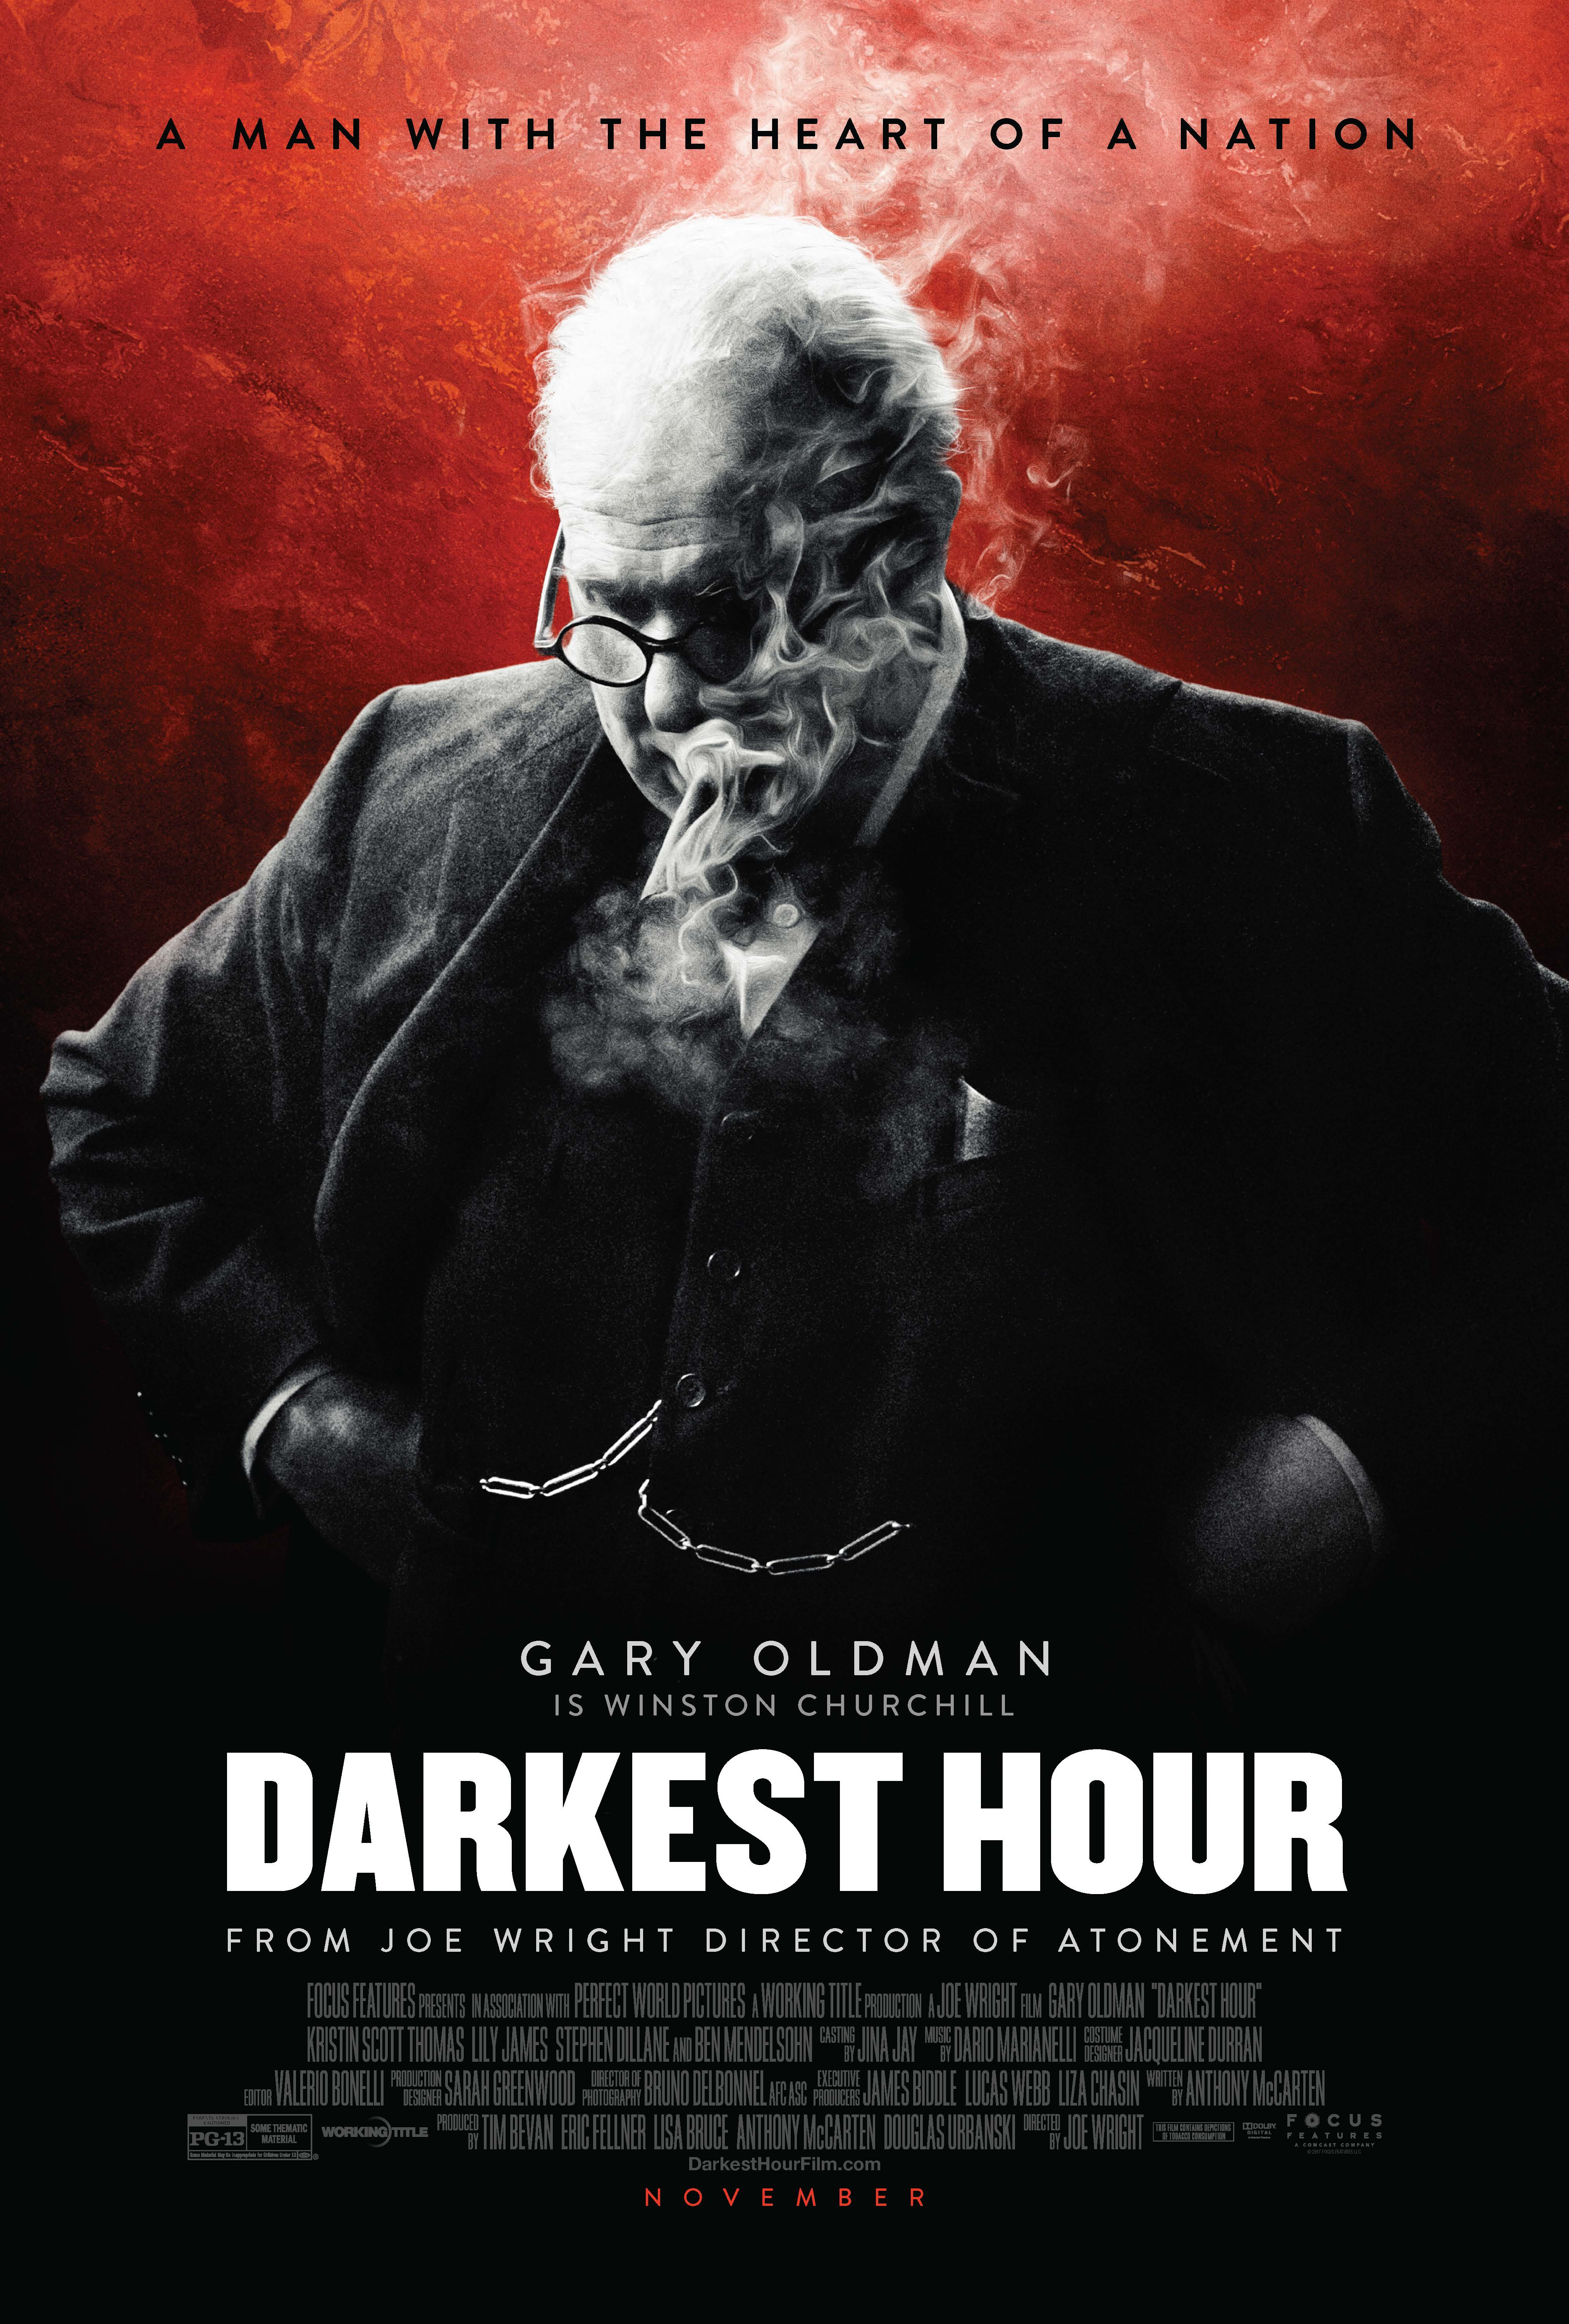 New Darkest Hour Clip Released By Focus Features | Nothing ...